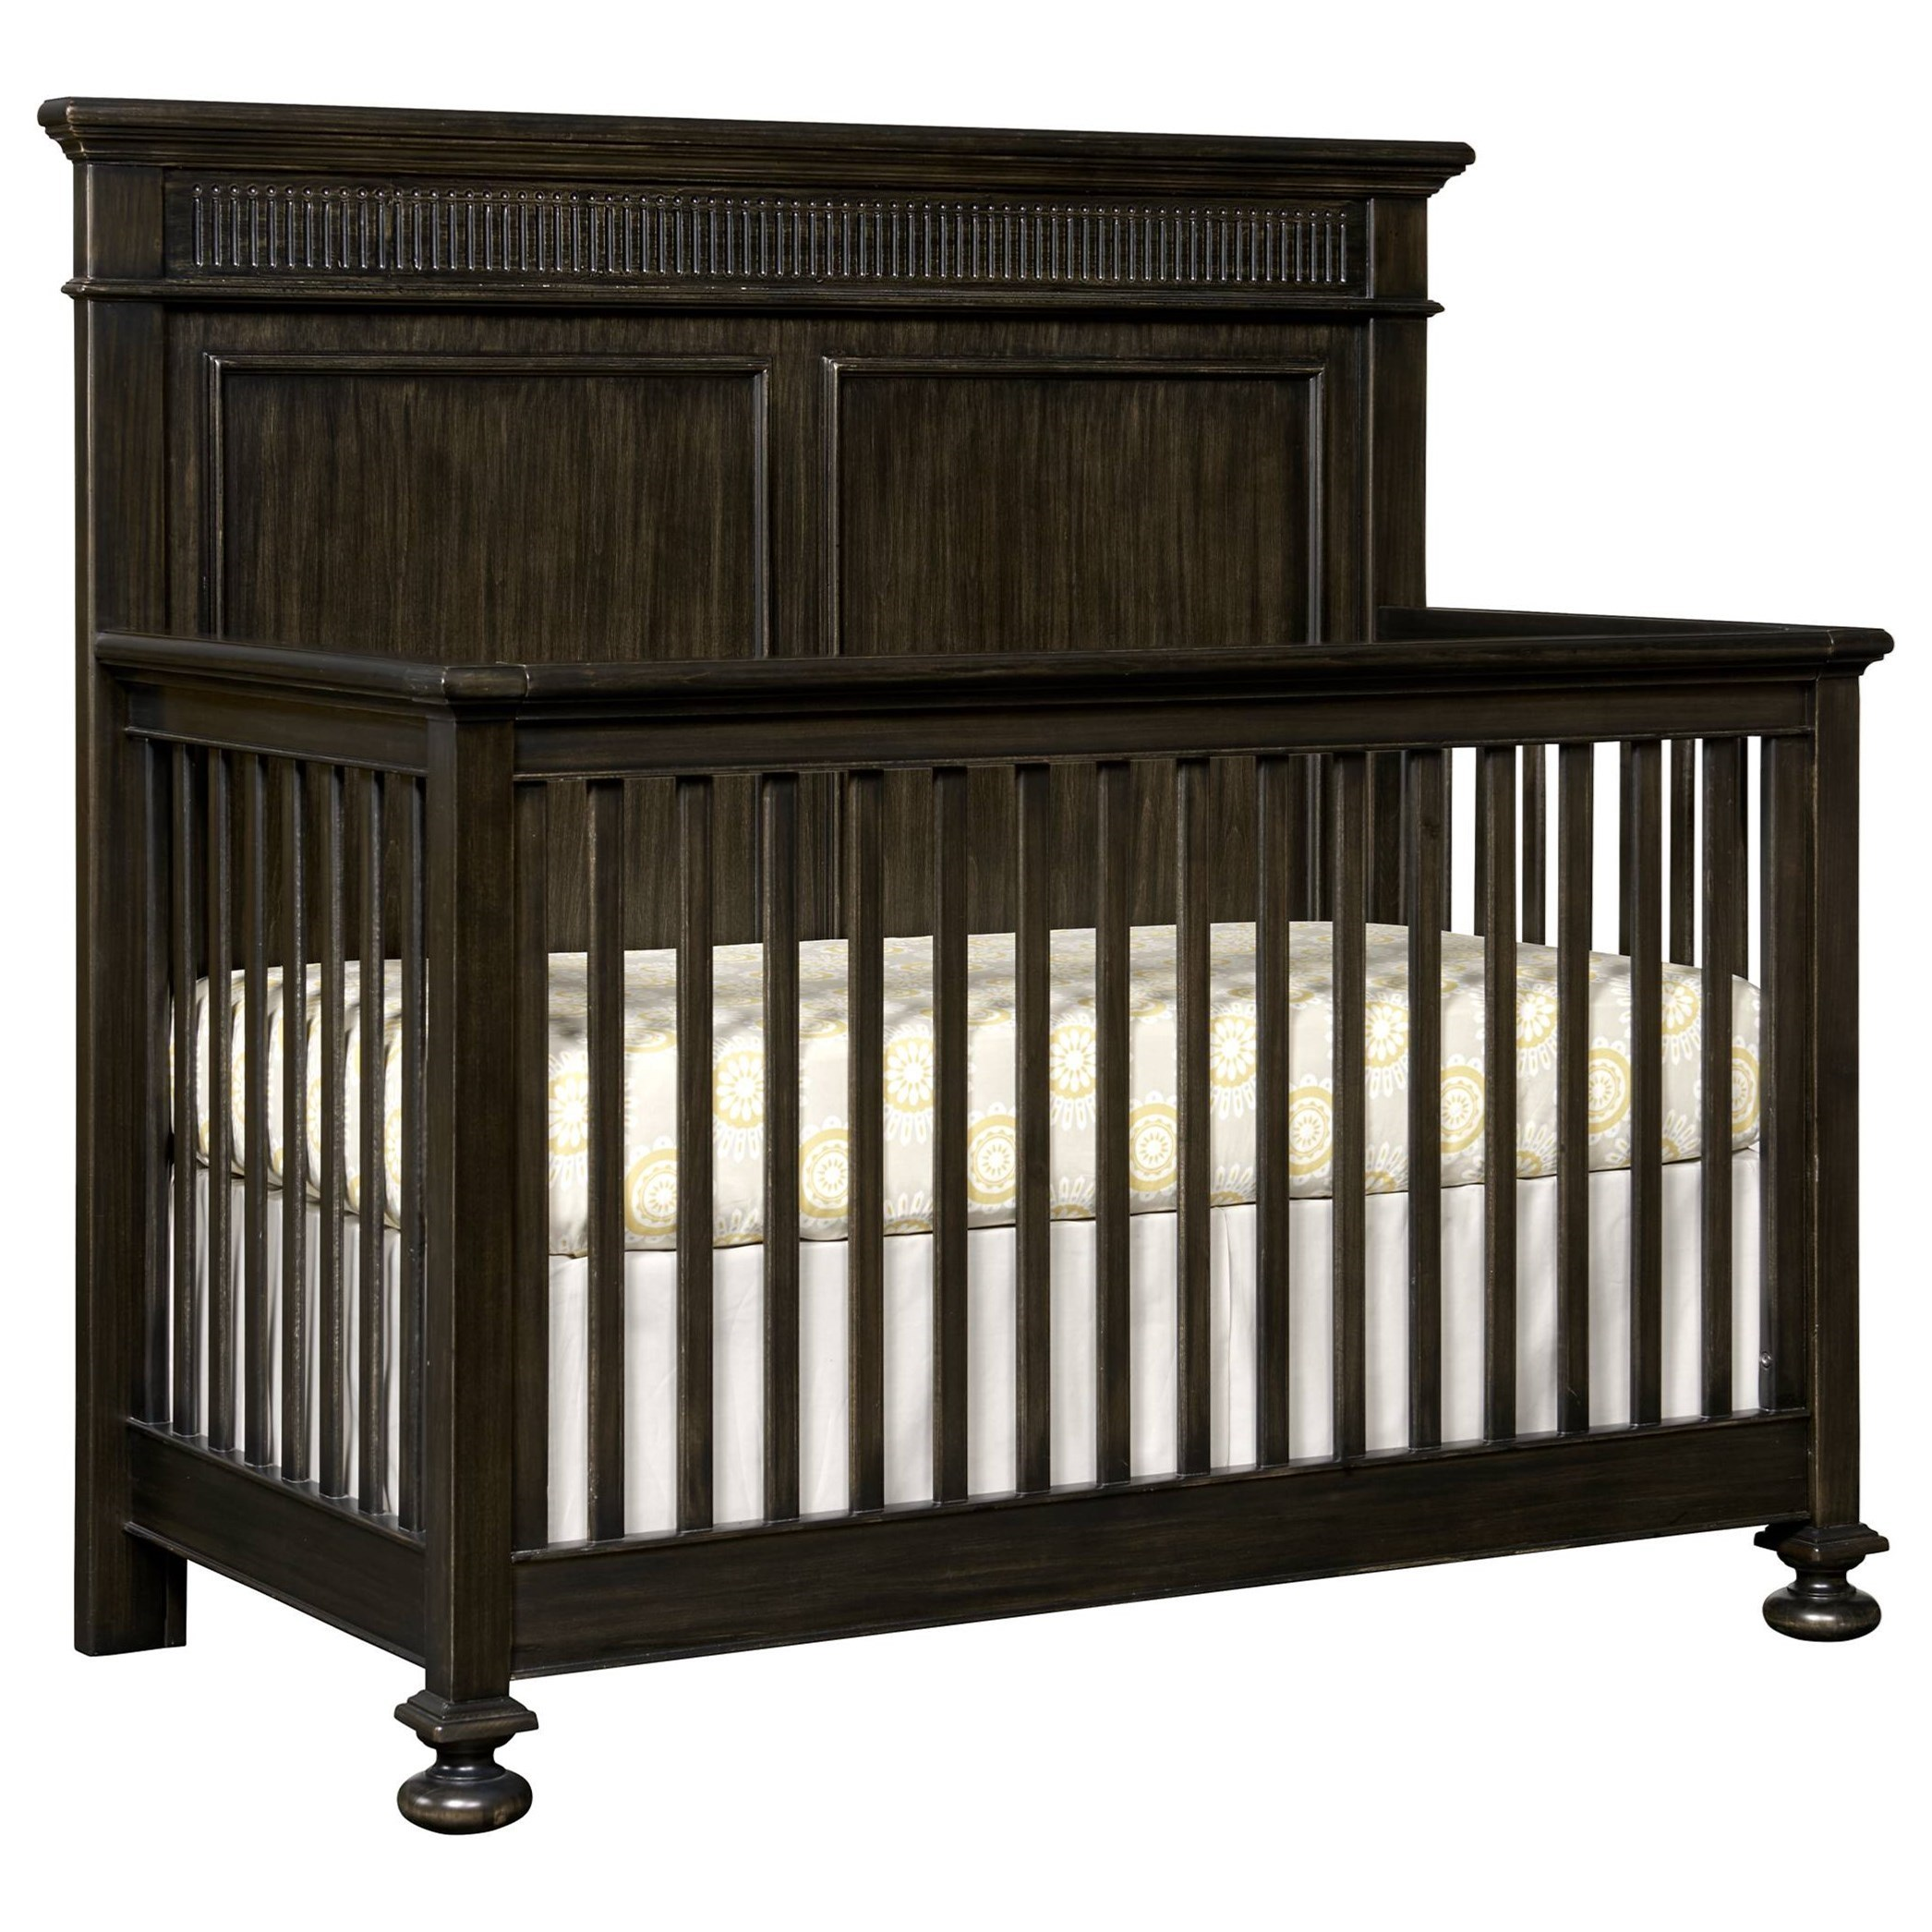 Stone & Leigh Furniture Smiling Hill Built To Grow Crib - Item Number: 560-83-50